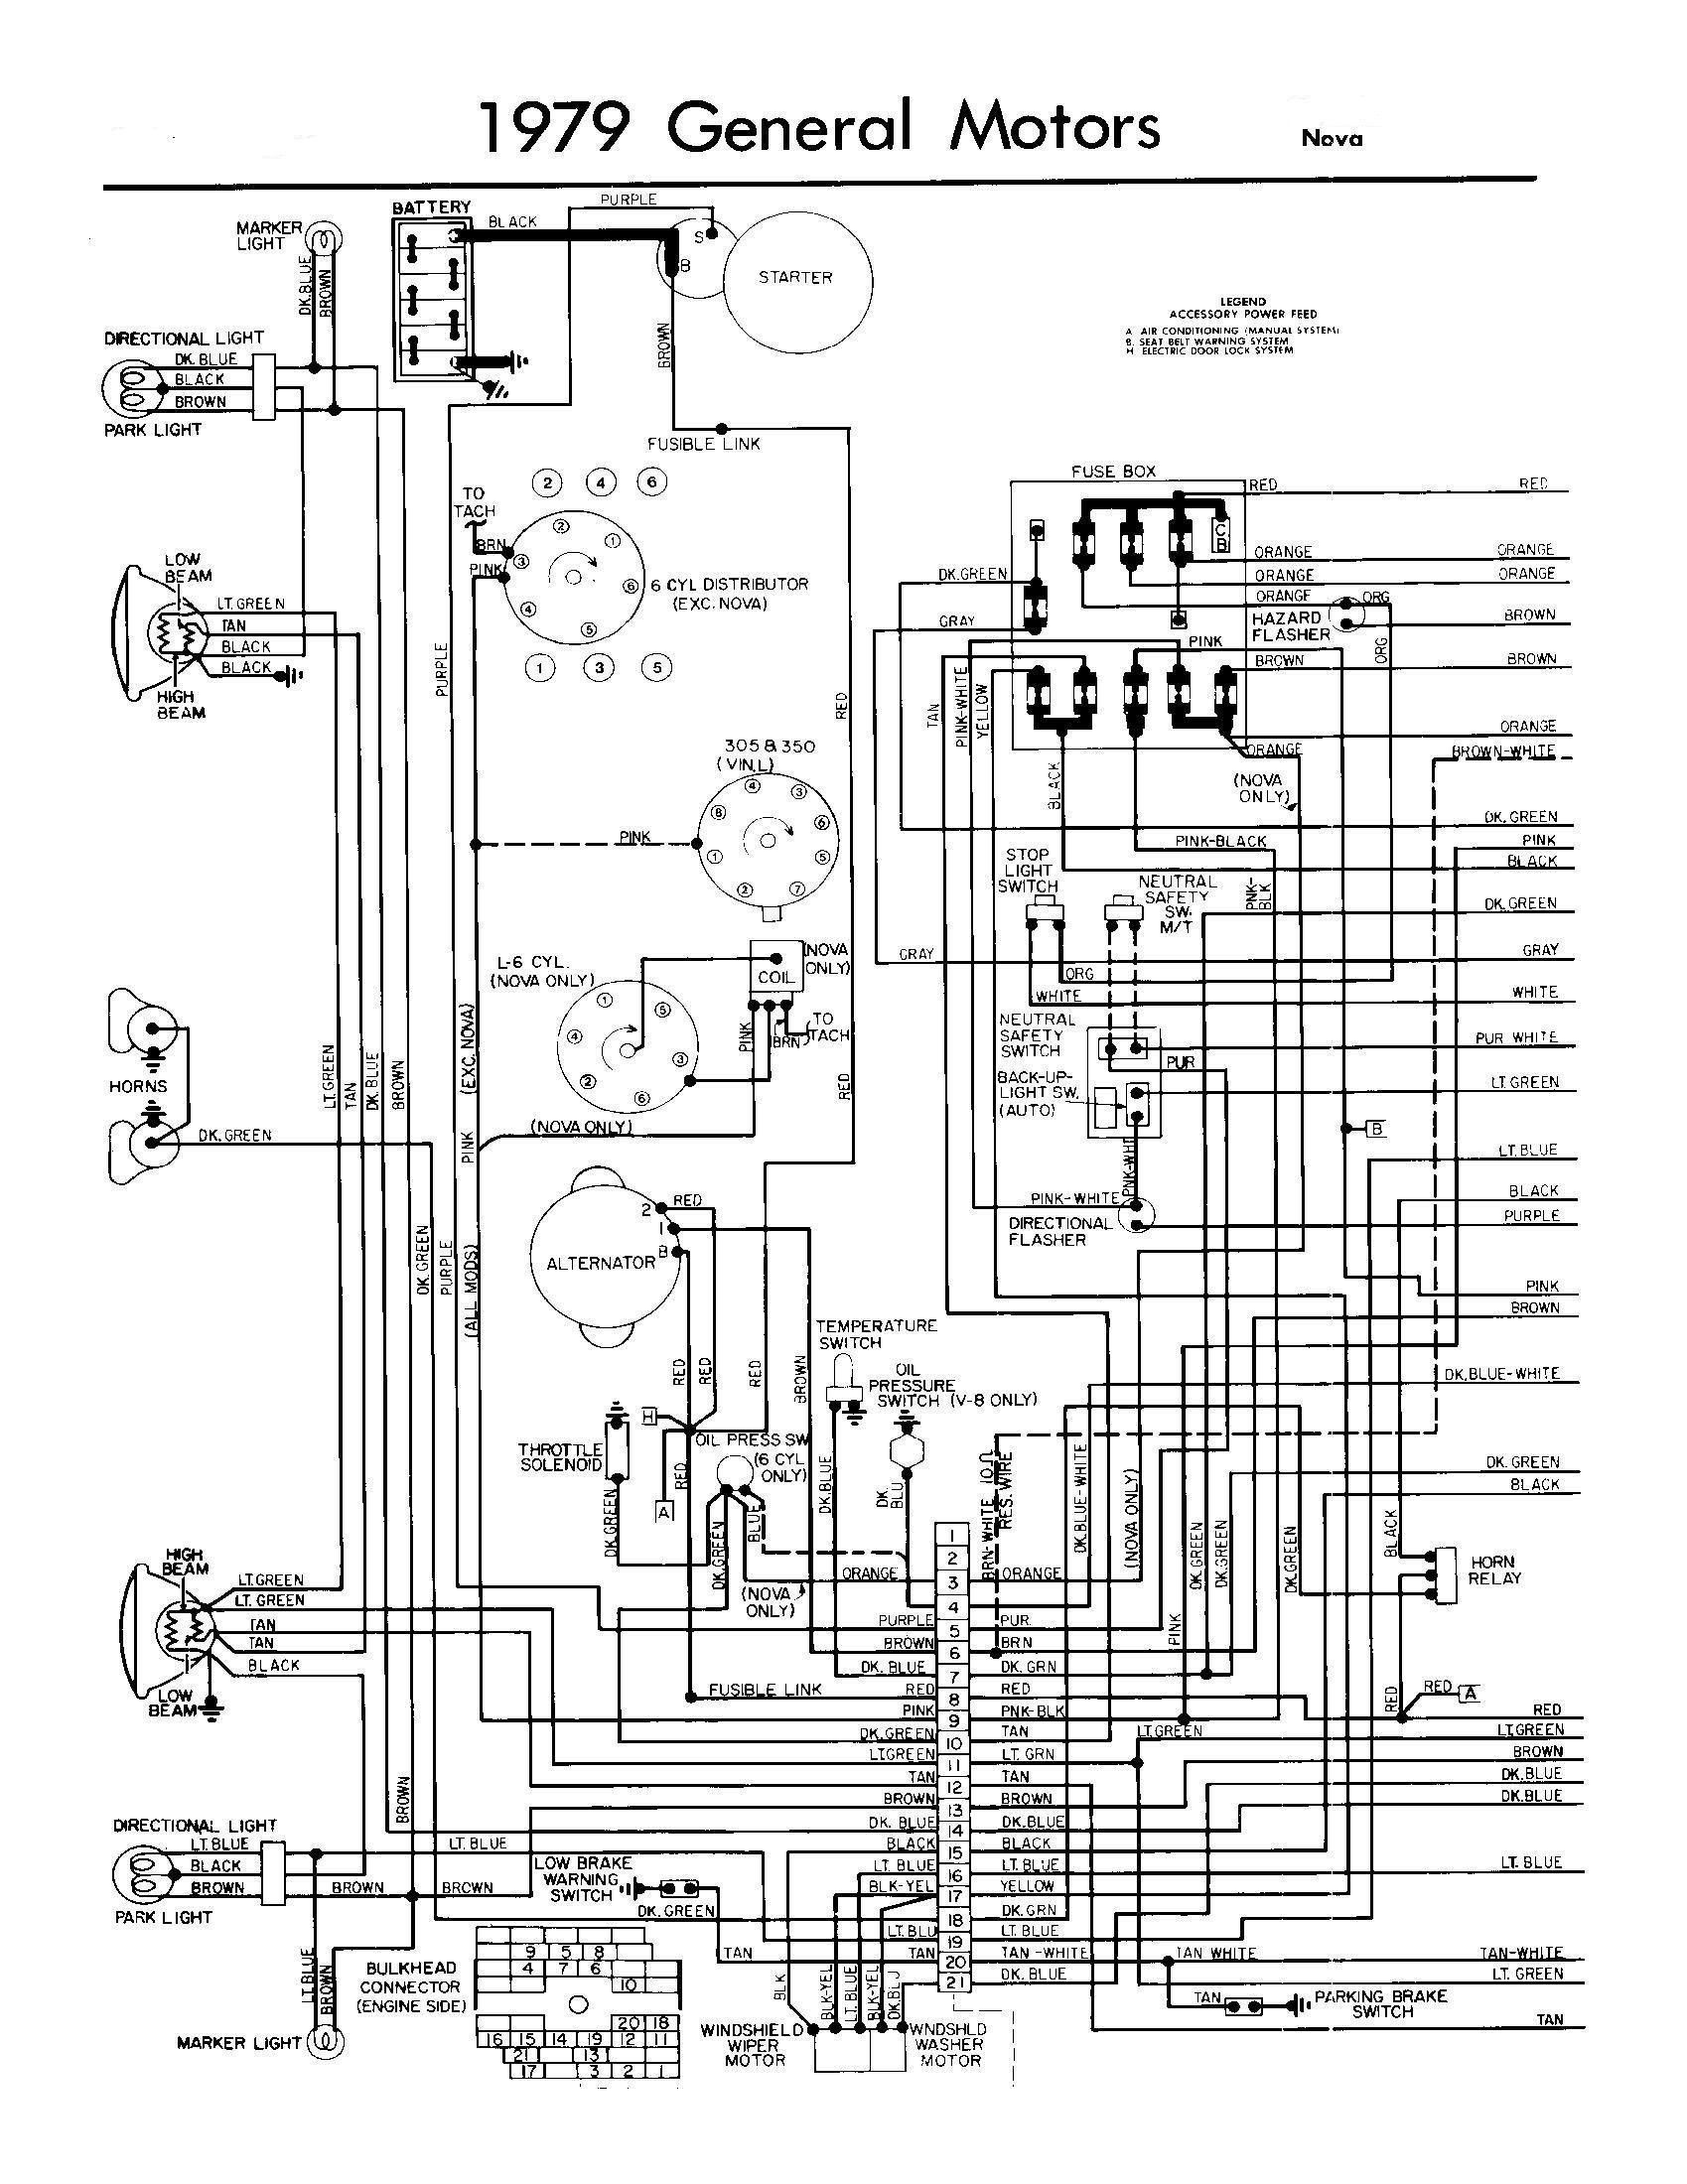 New R33 Alternator Wiring Diagram #diagrams #digramssample